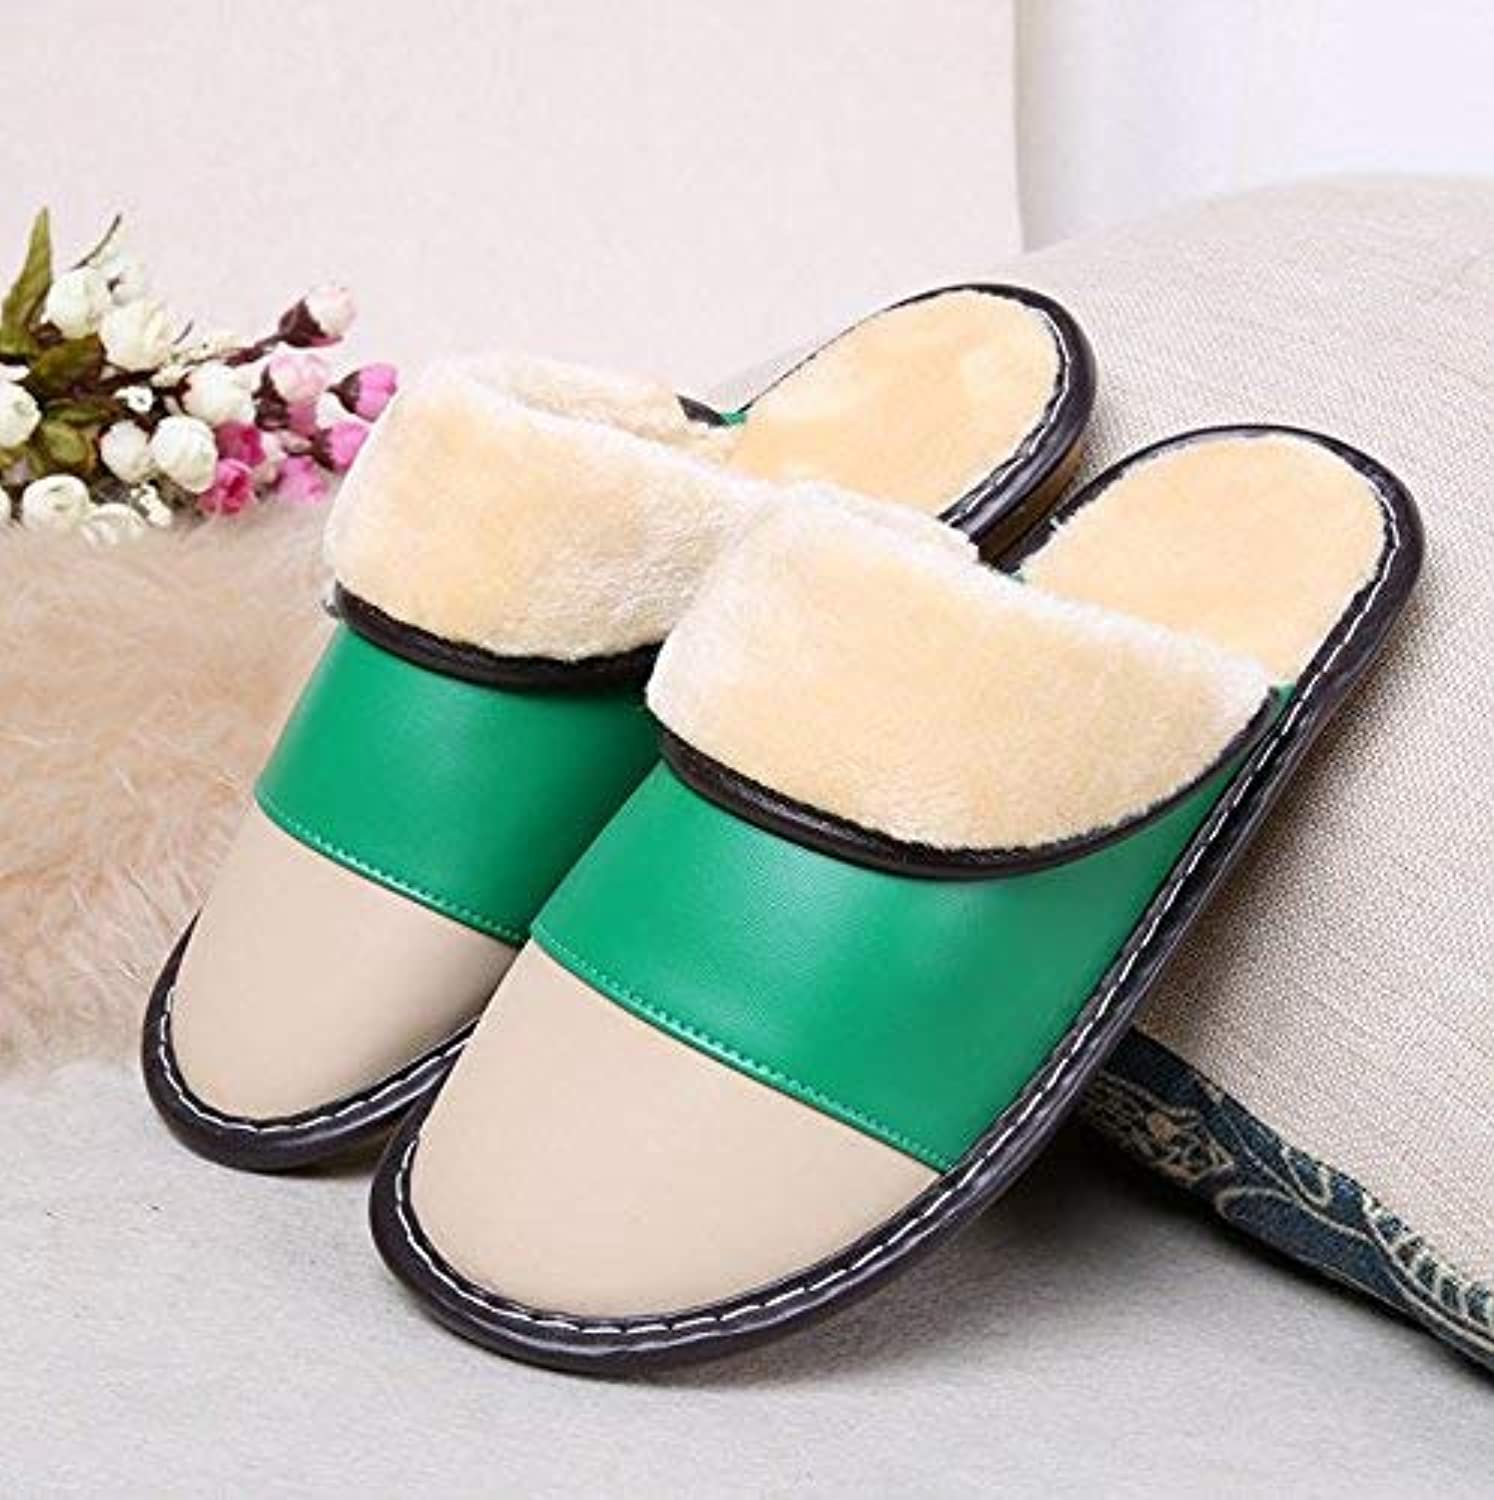 So8ooa Lady Slippers Women 's Home Leather Slippers Indoor Keep Warm Casual Slippers Green Mixed color Personality Quality for Women